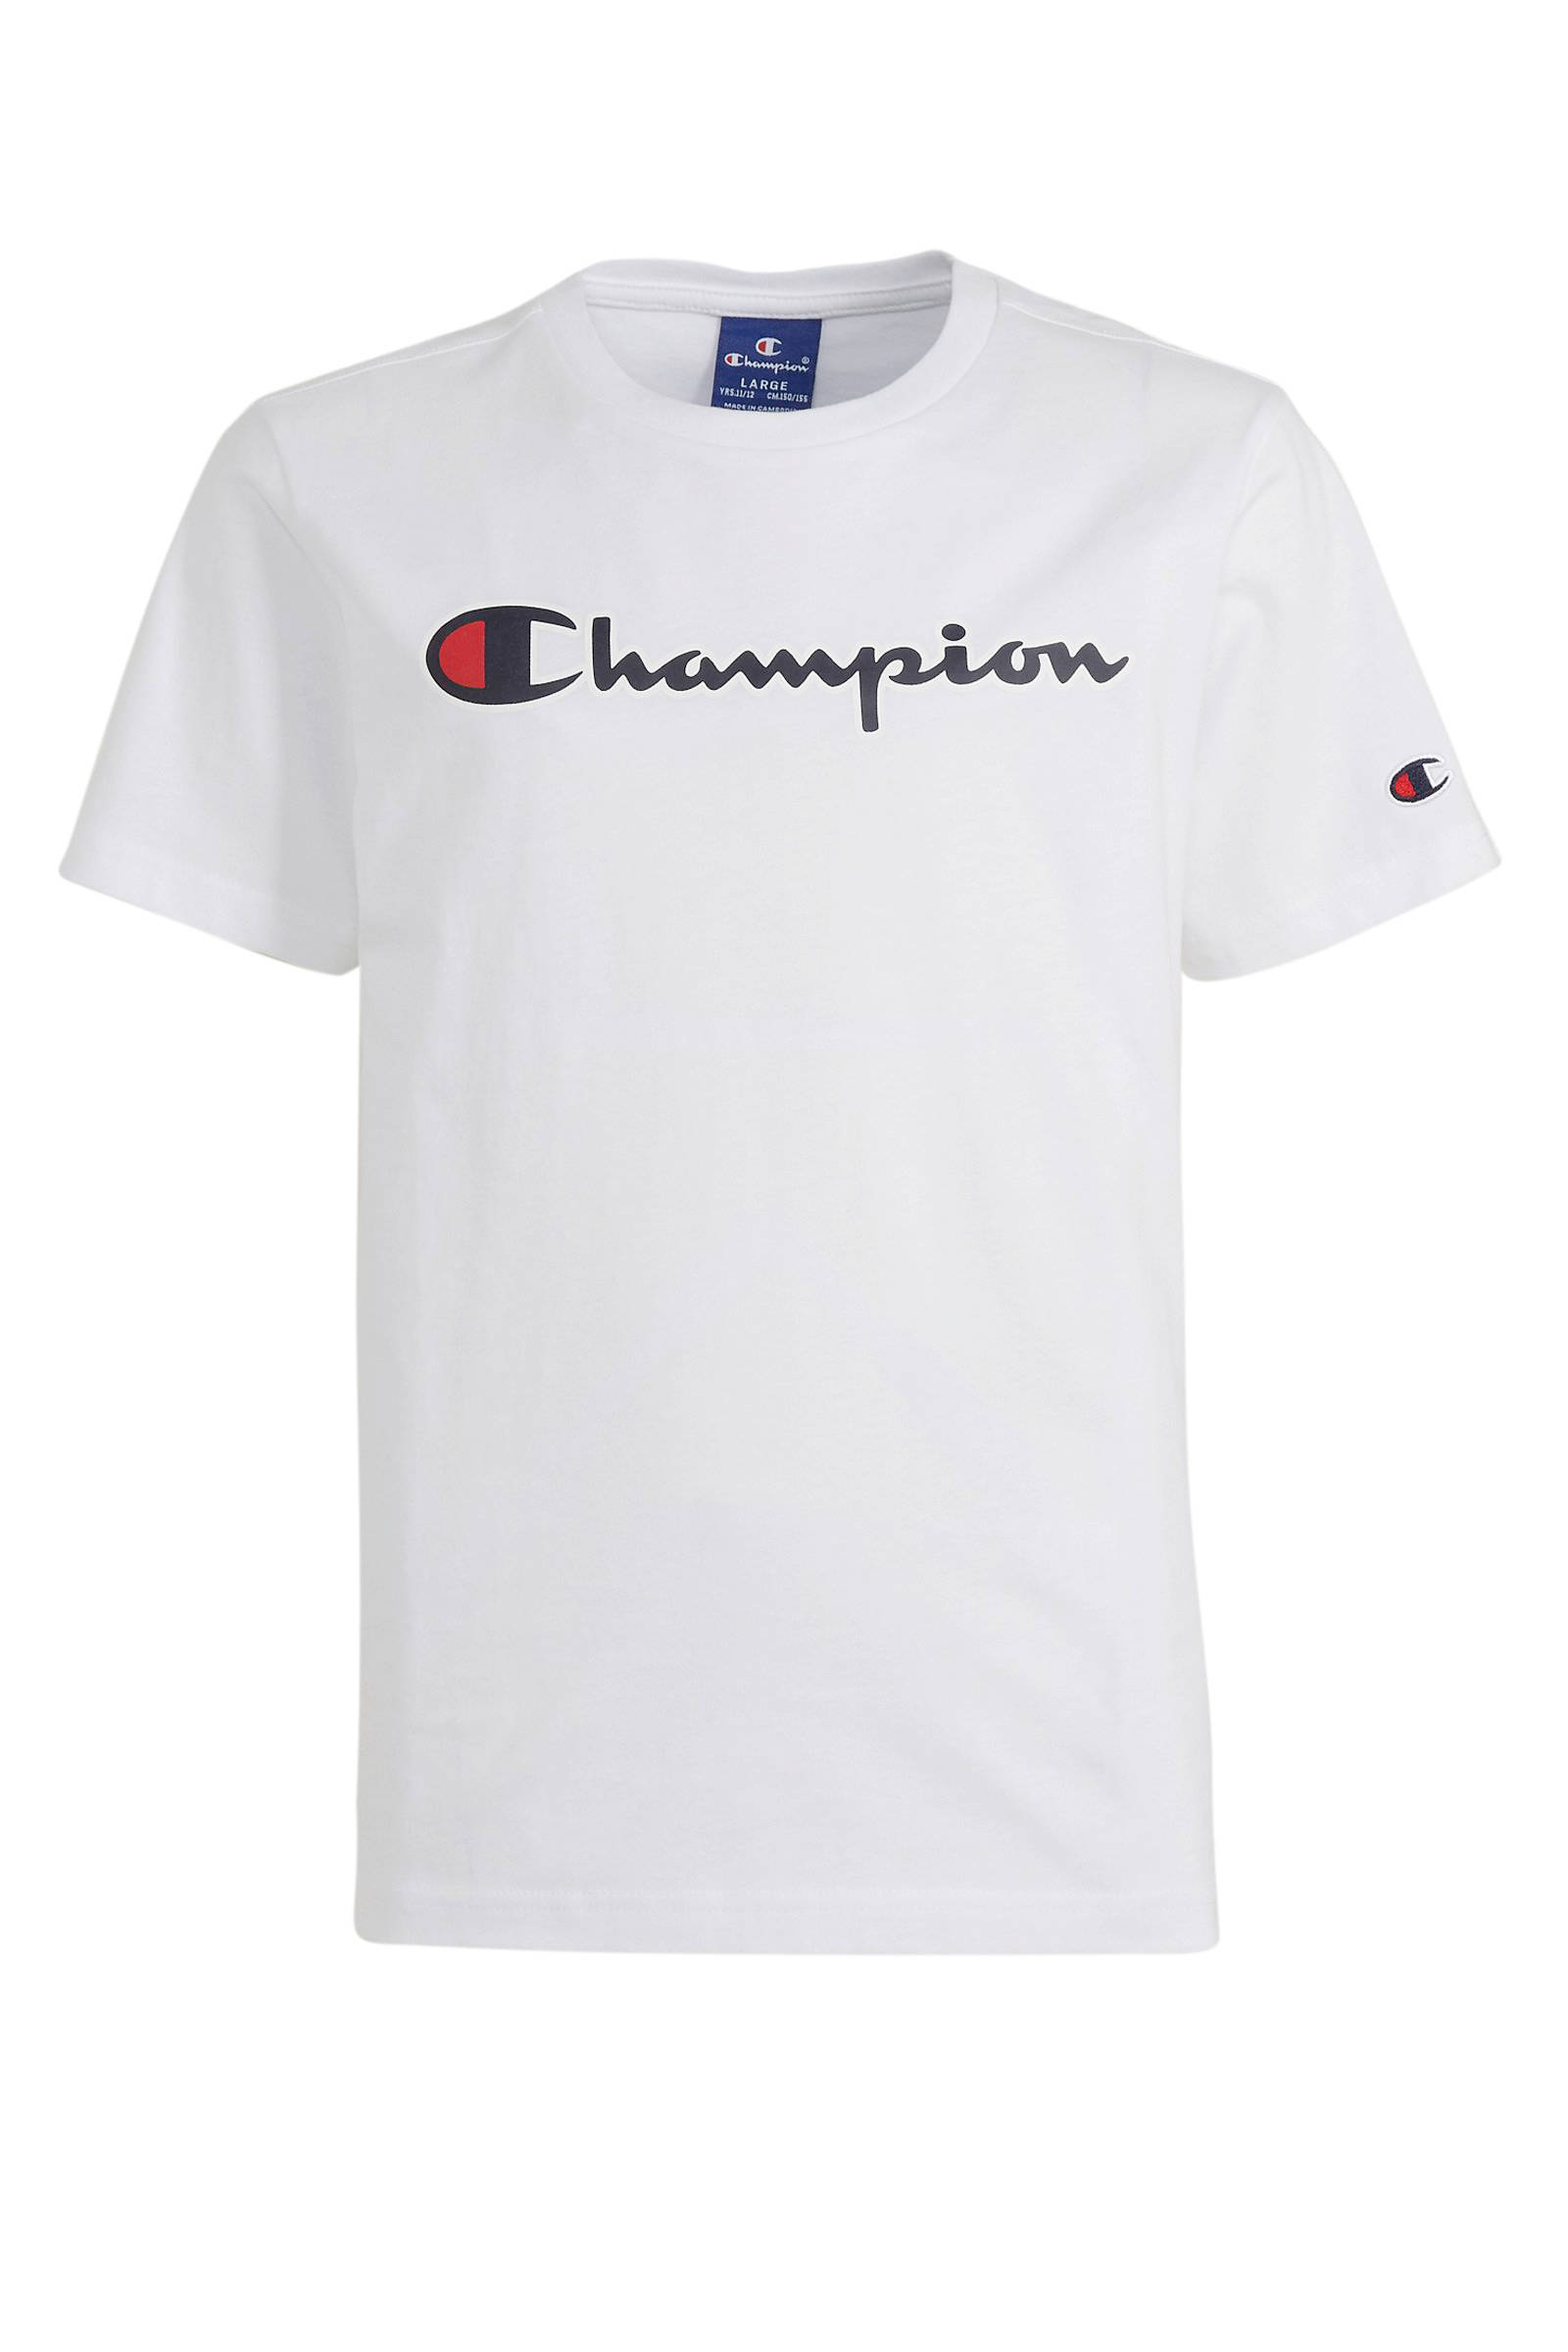 Champion shirt shirts Dames Top shirts | KLEDING.nl